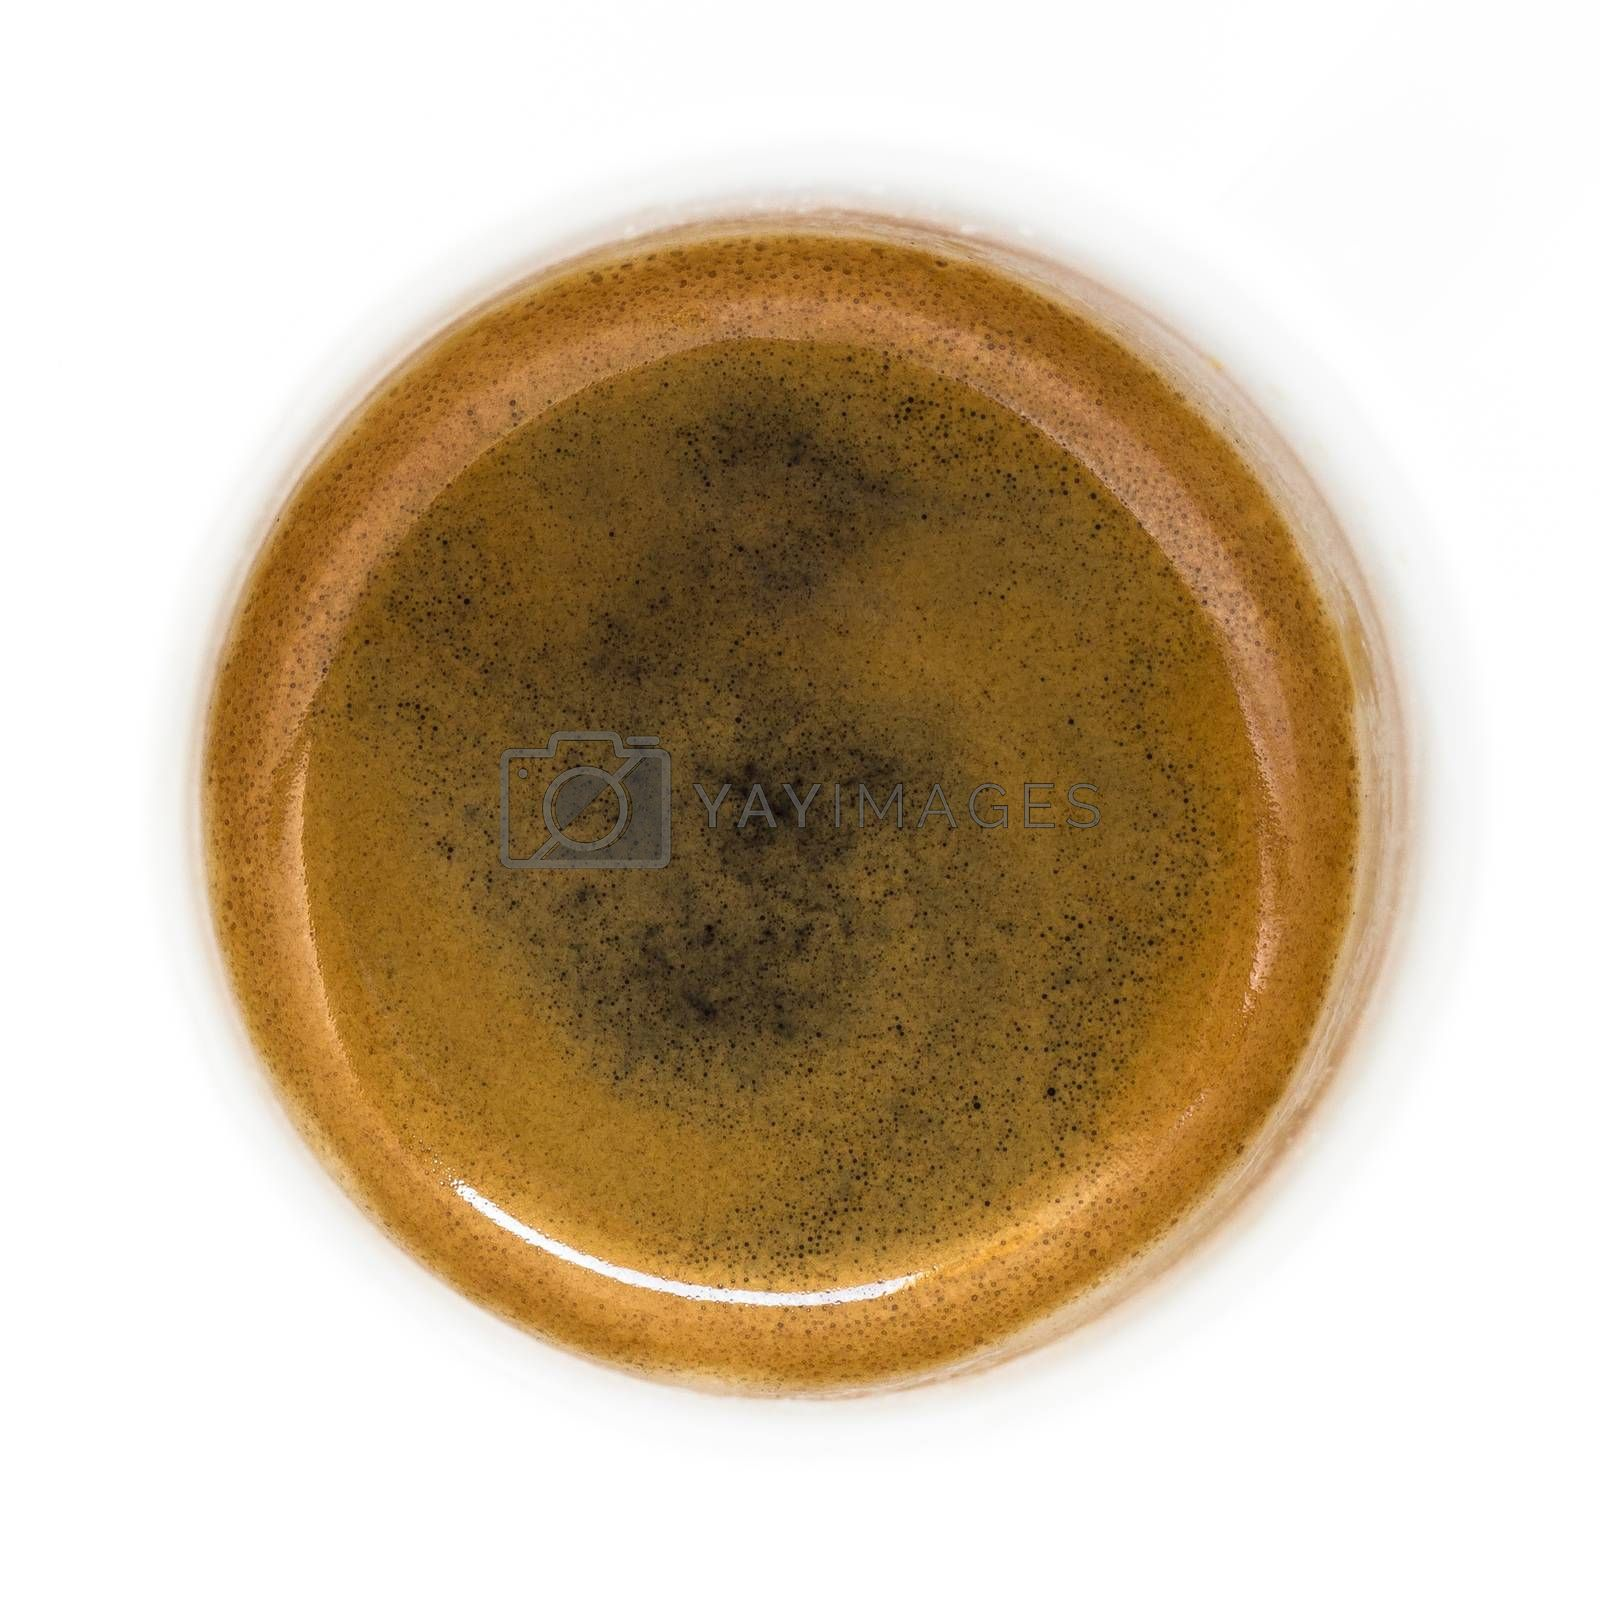 Fresh espresso on white background, view from above.